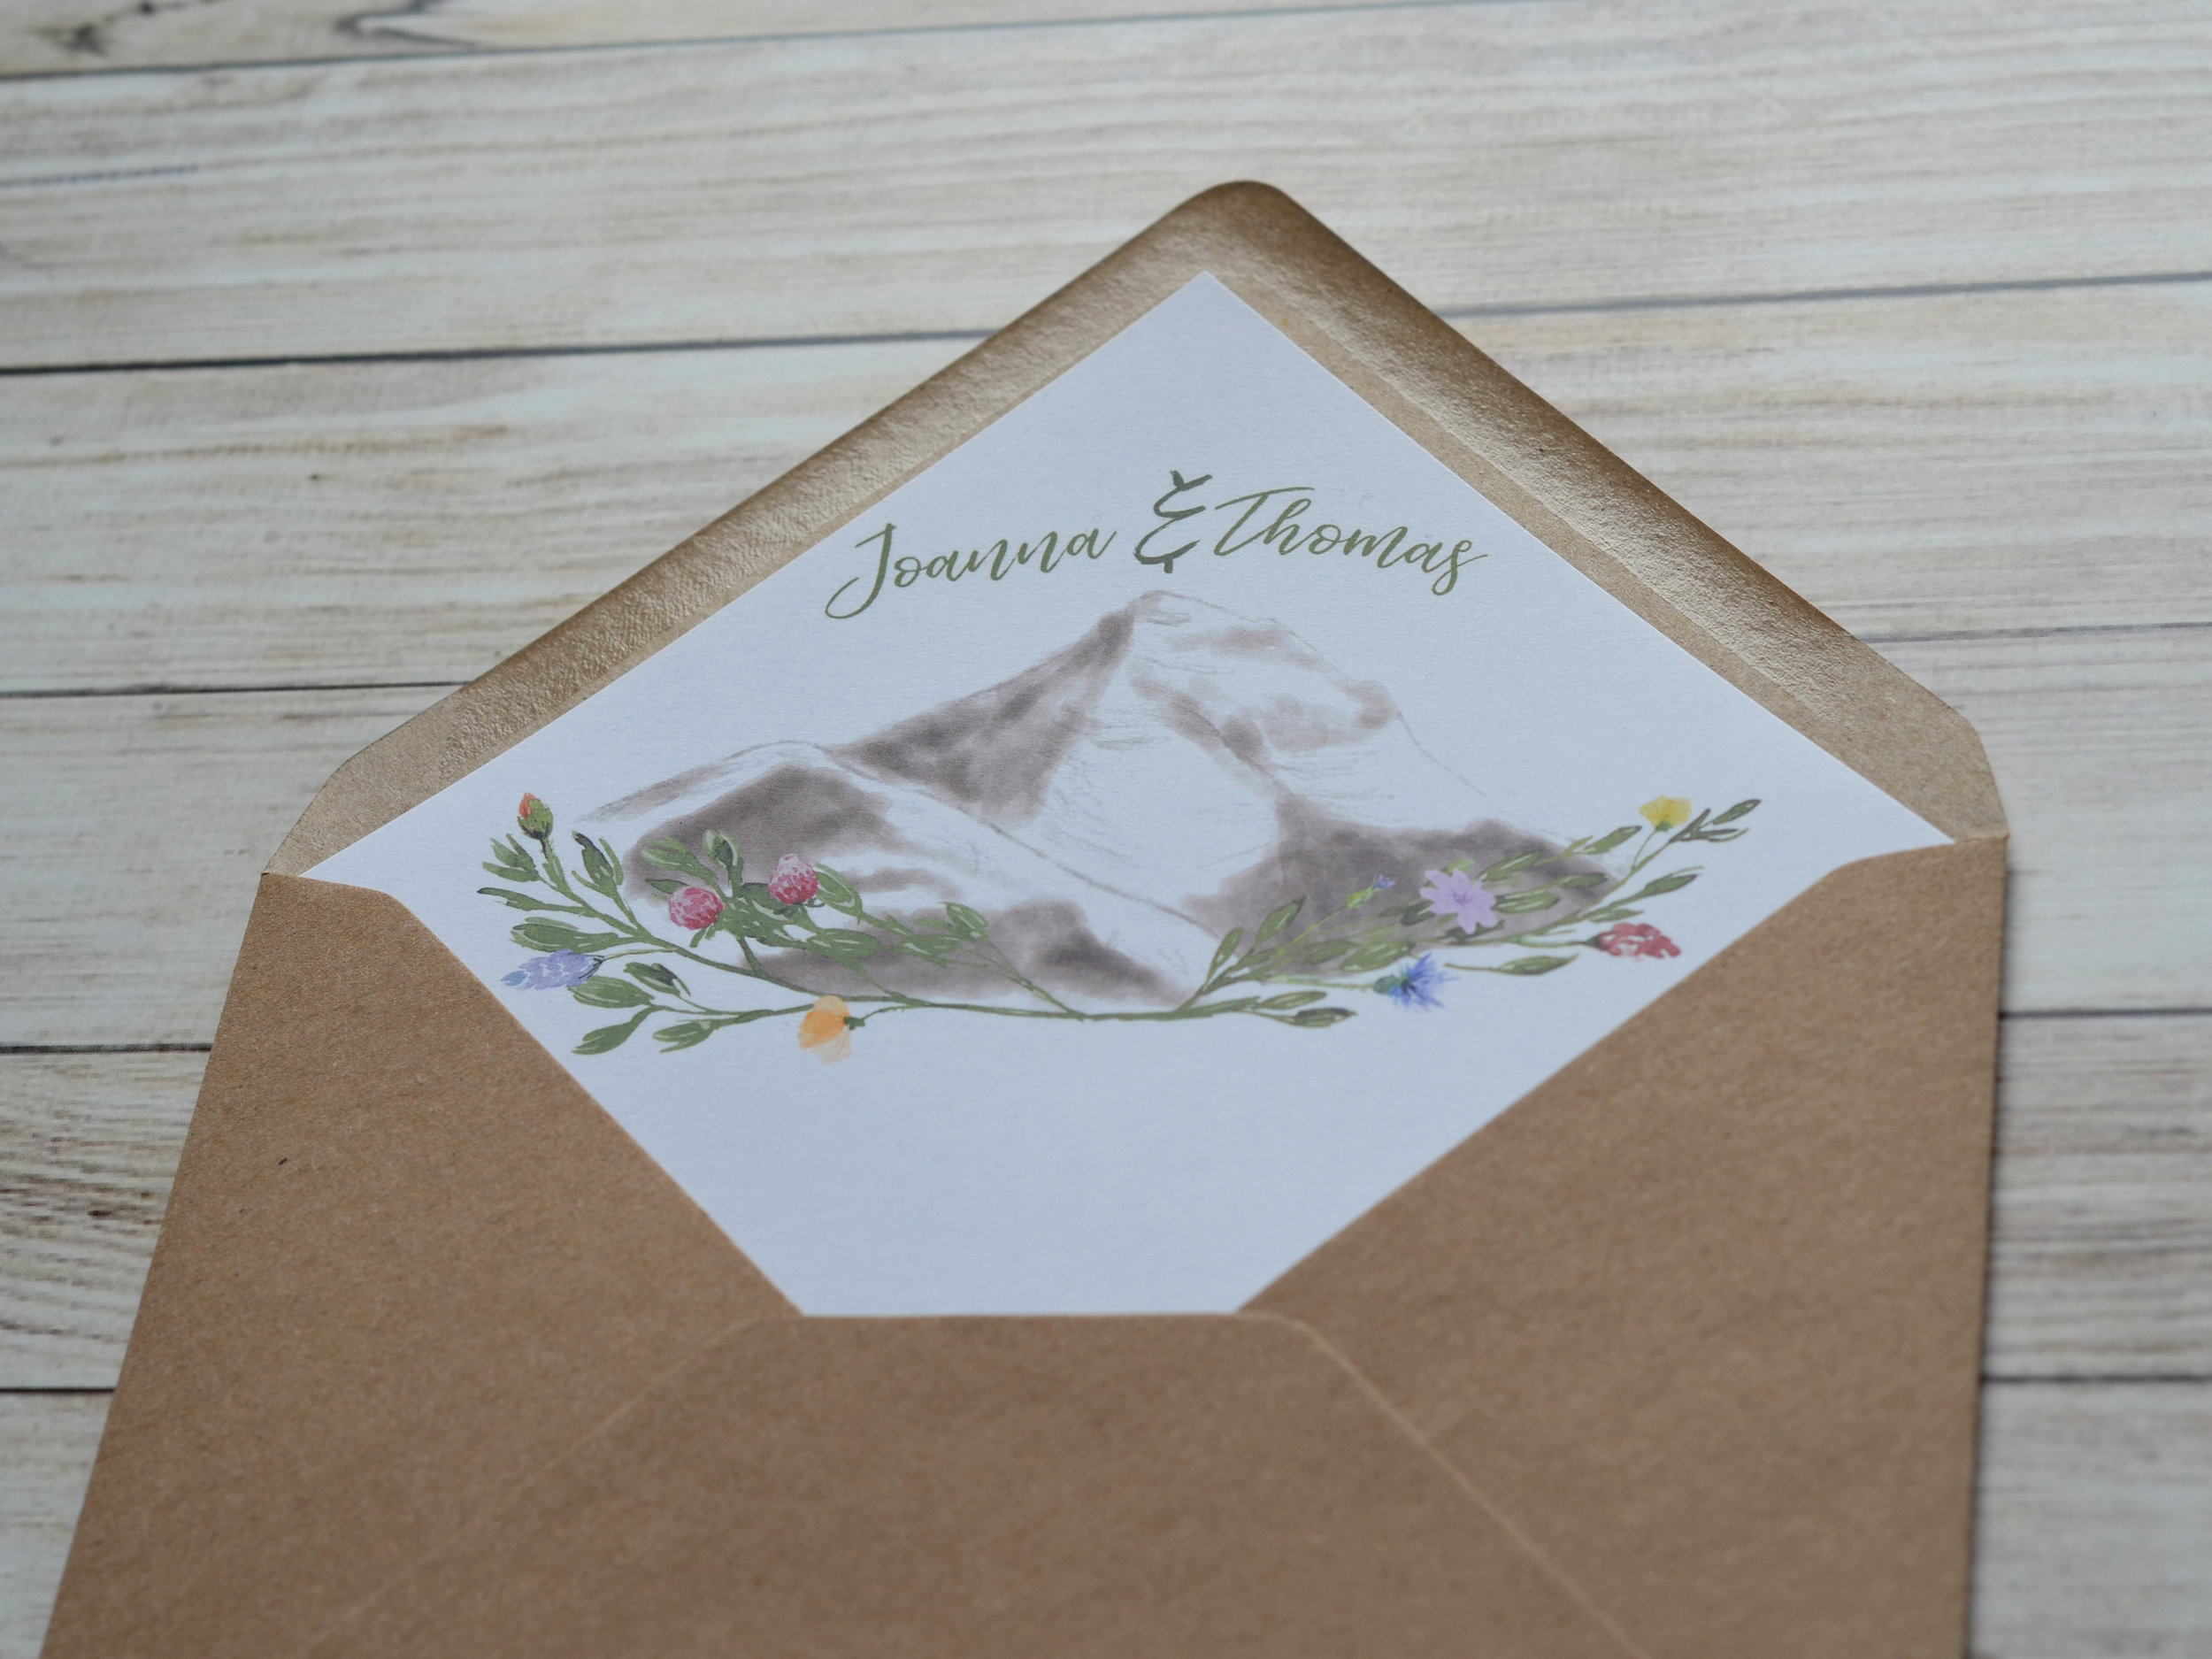 bespoke illustrated wedding stationery design